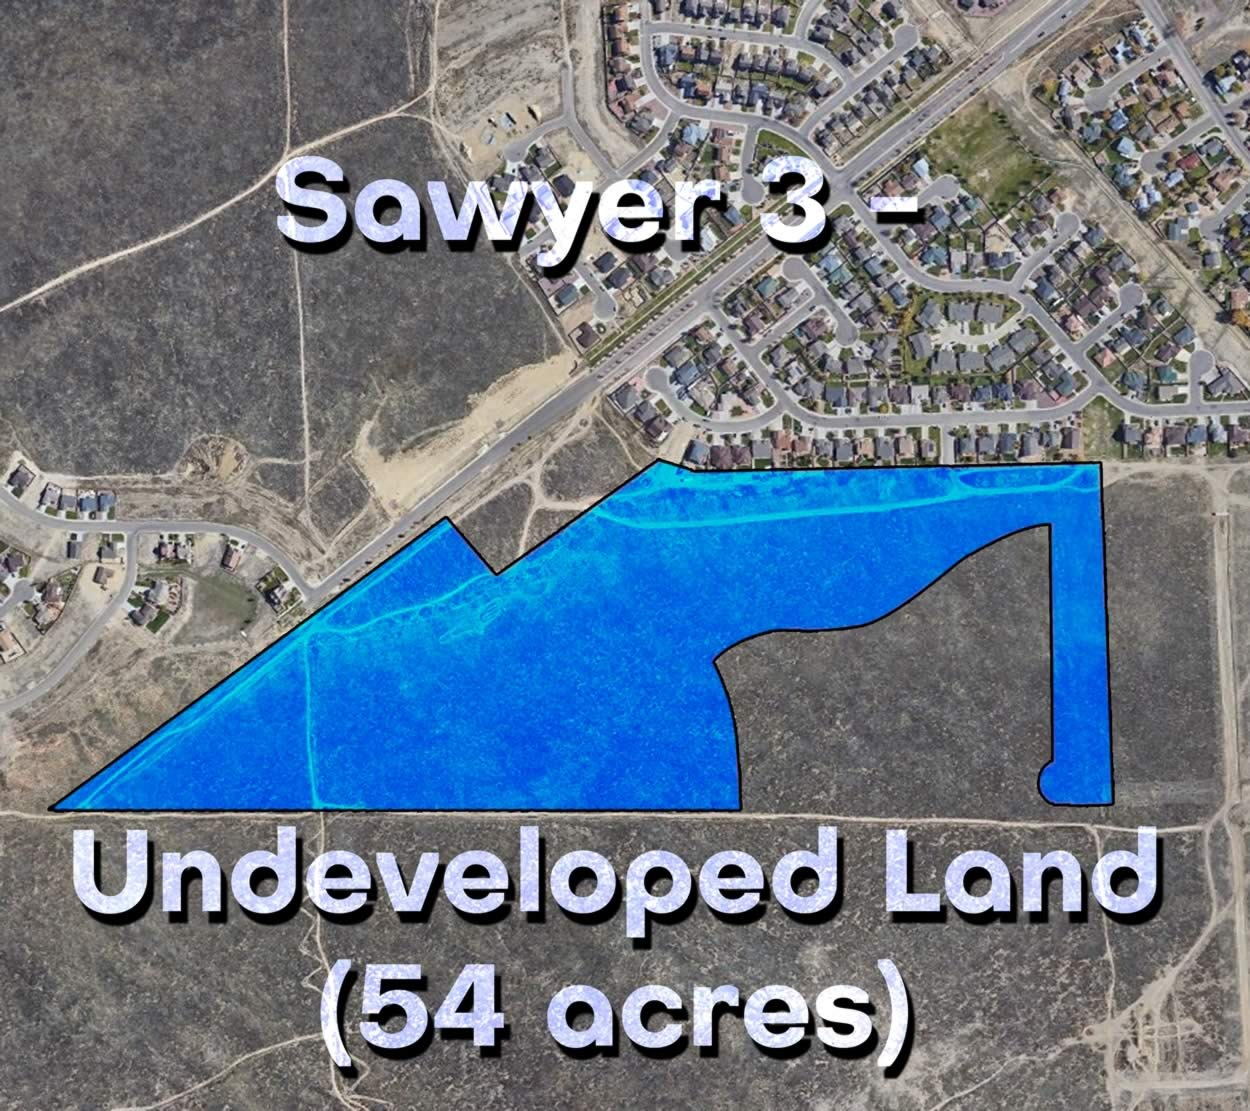 Sawyer Ridge Phase 3 Land Development